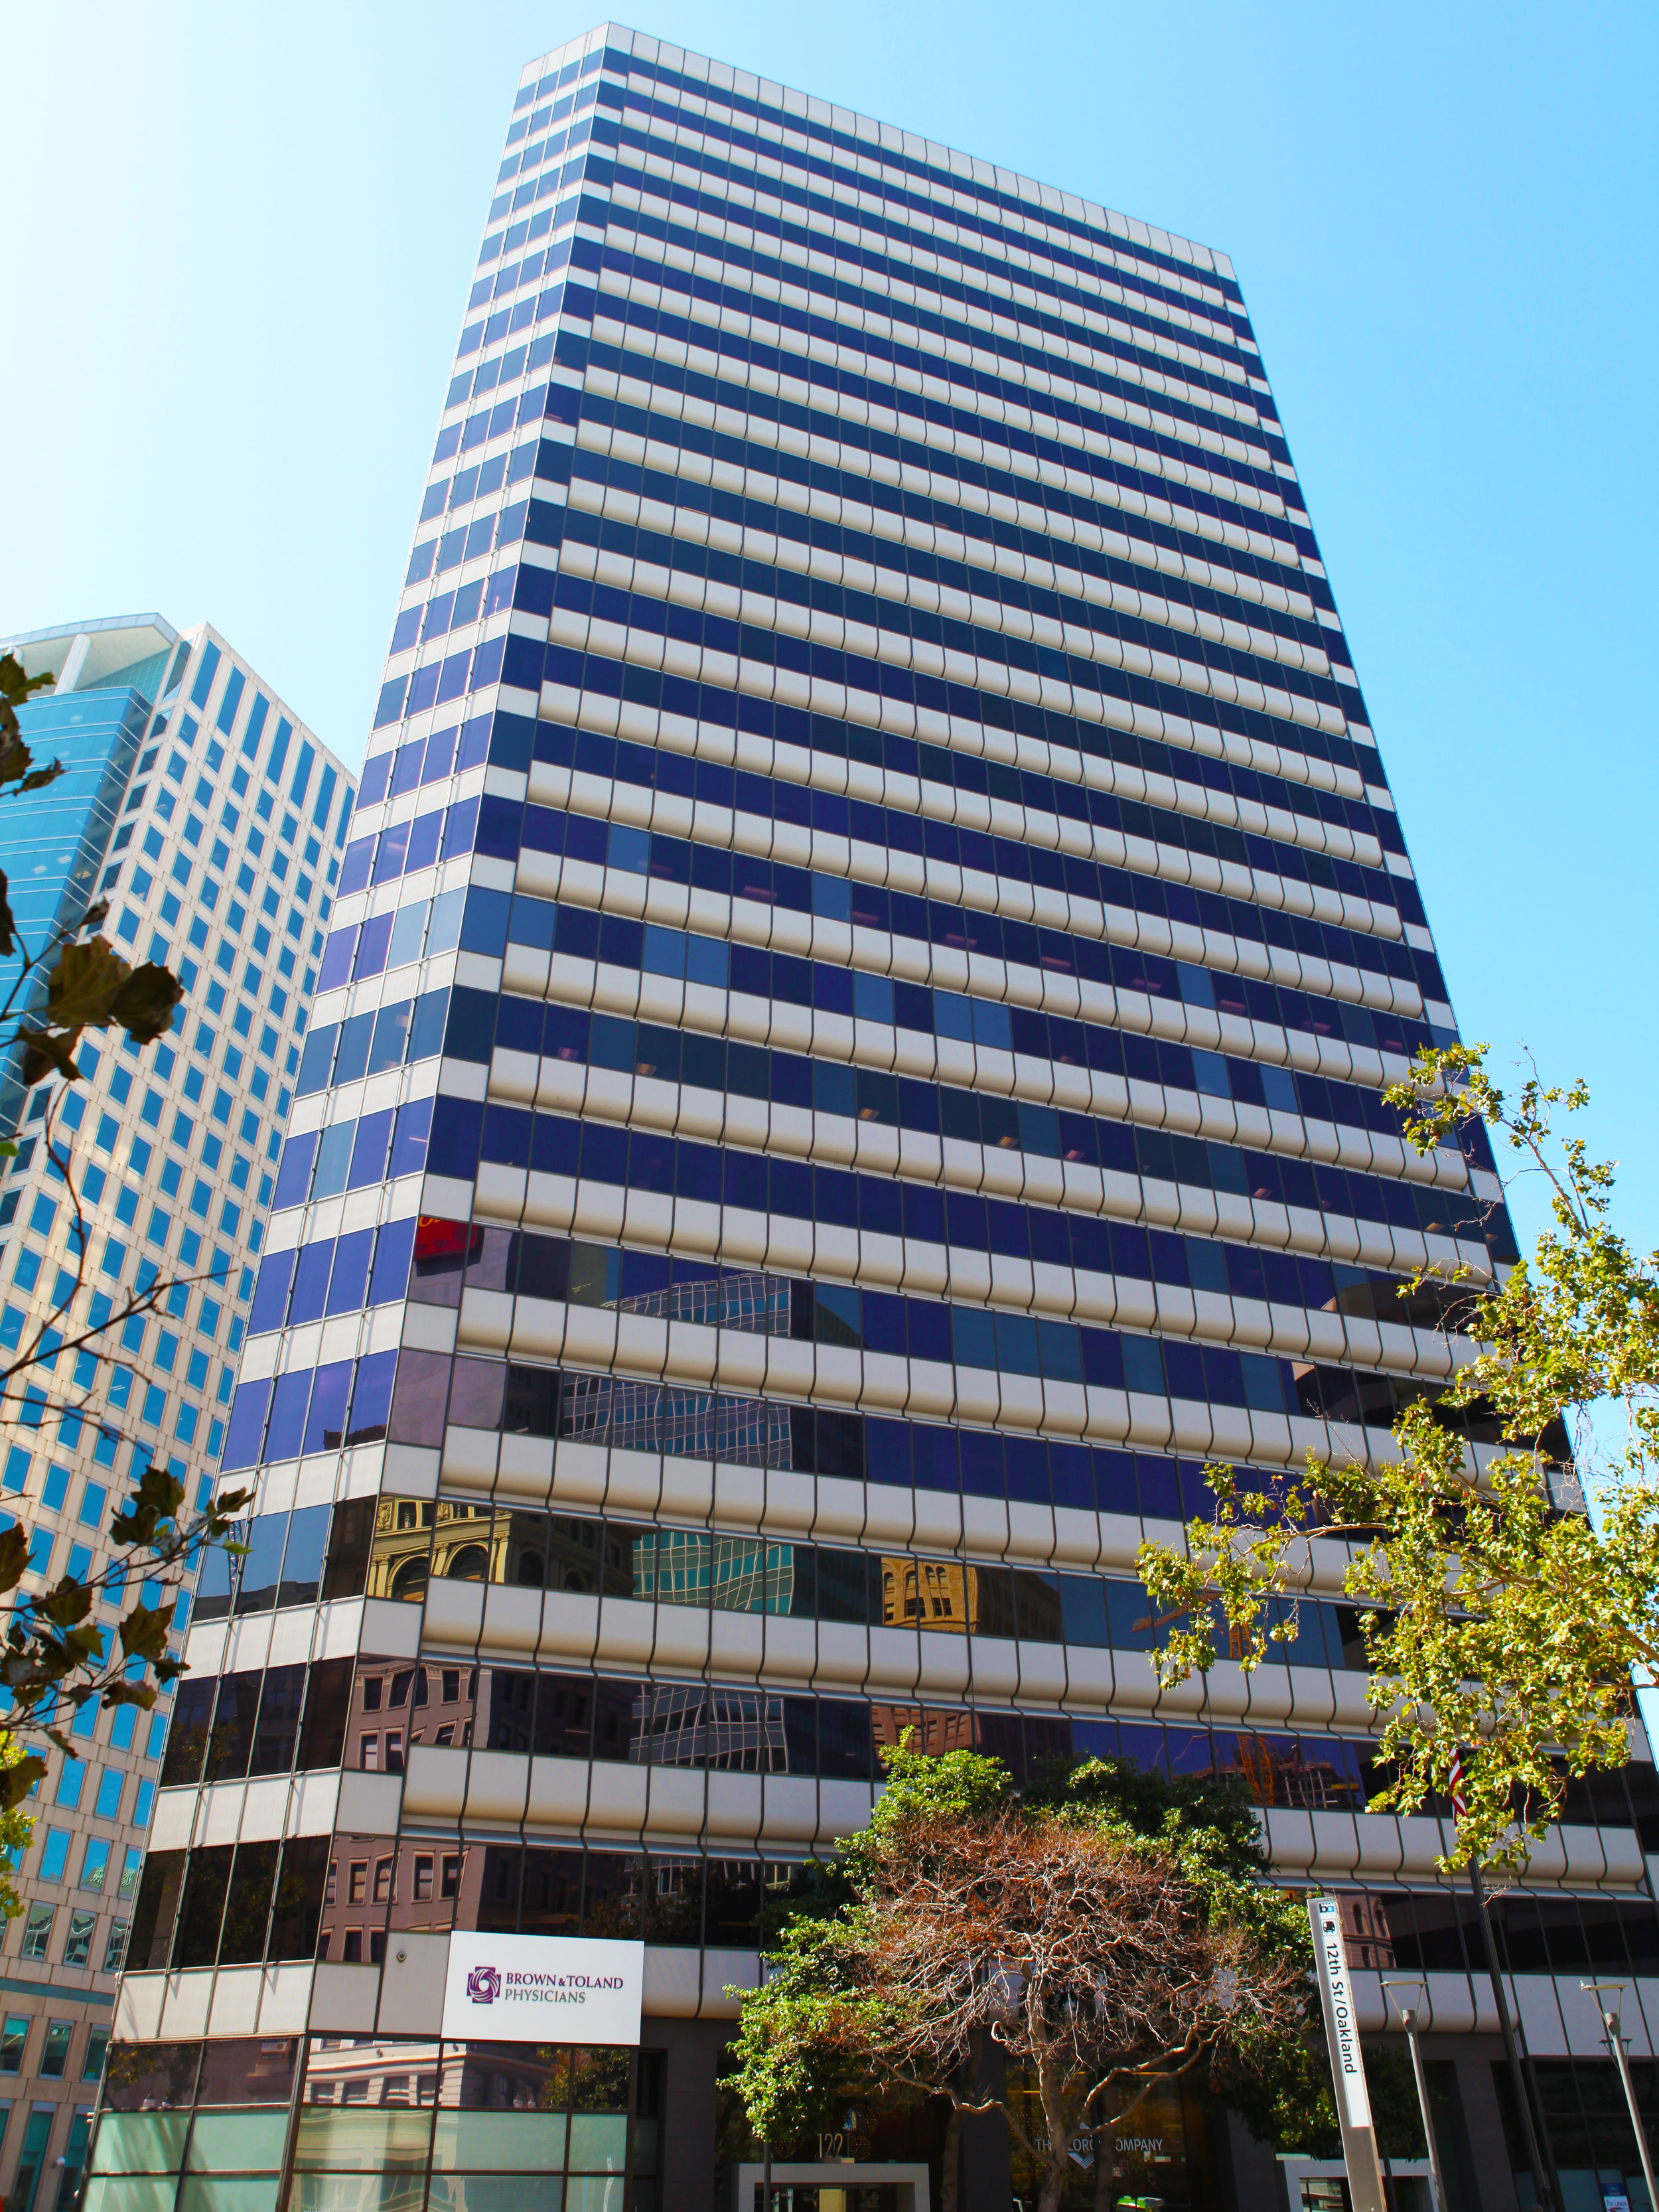 Brown & Toland - 1221 Broadway - Oakland, CA:  Previous known as the Clorox building, The Jones Lang LaSalle' developed space is now home to Brown & Toland. The company now occupies a new 60,000 square foot space that with serve as its headquarters for their 300+ Bay Area employees.